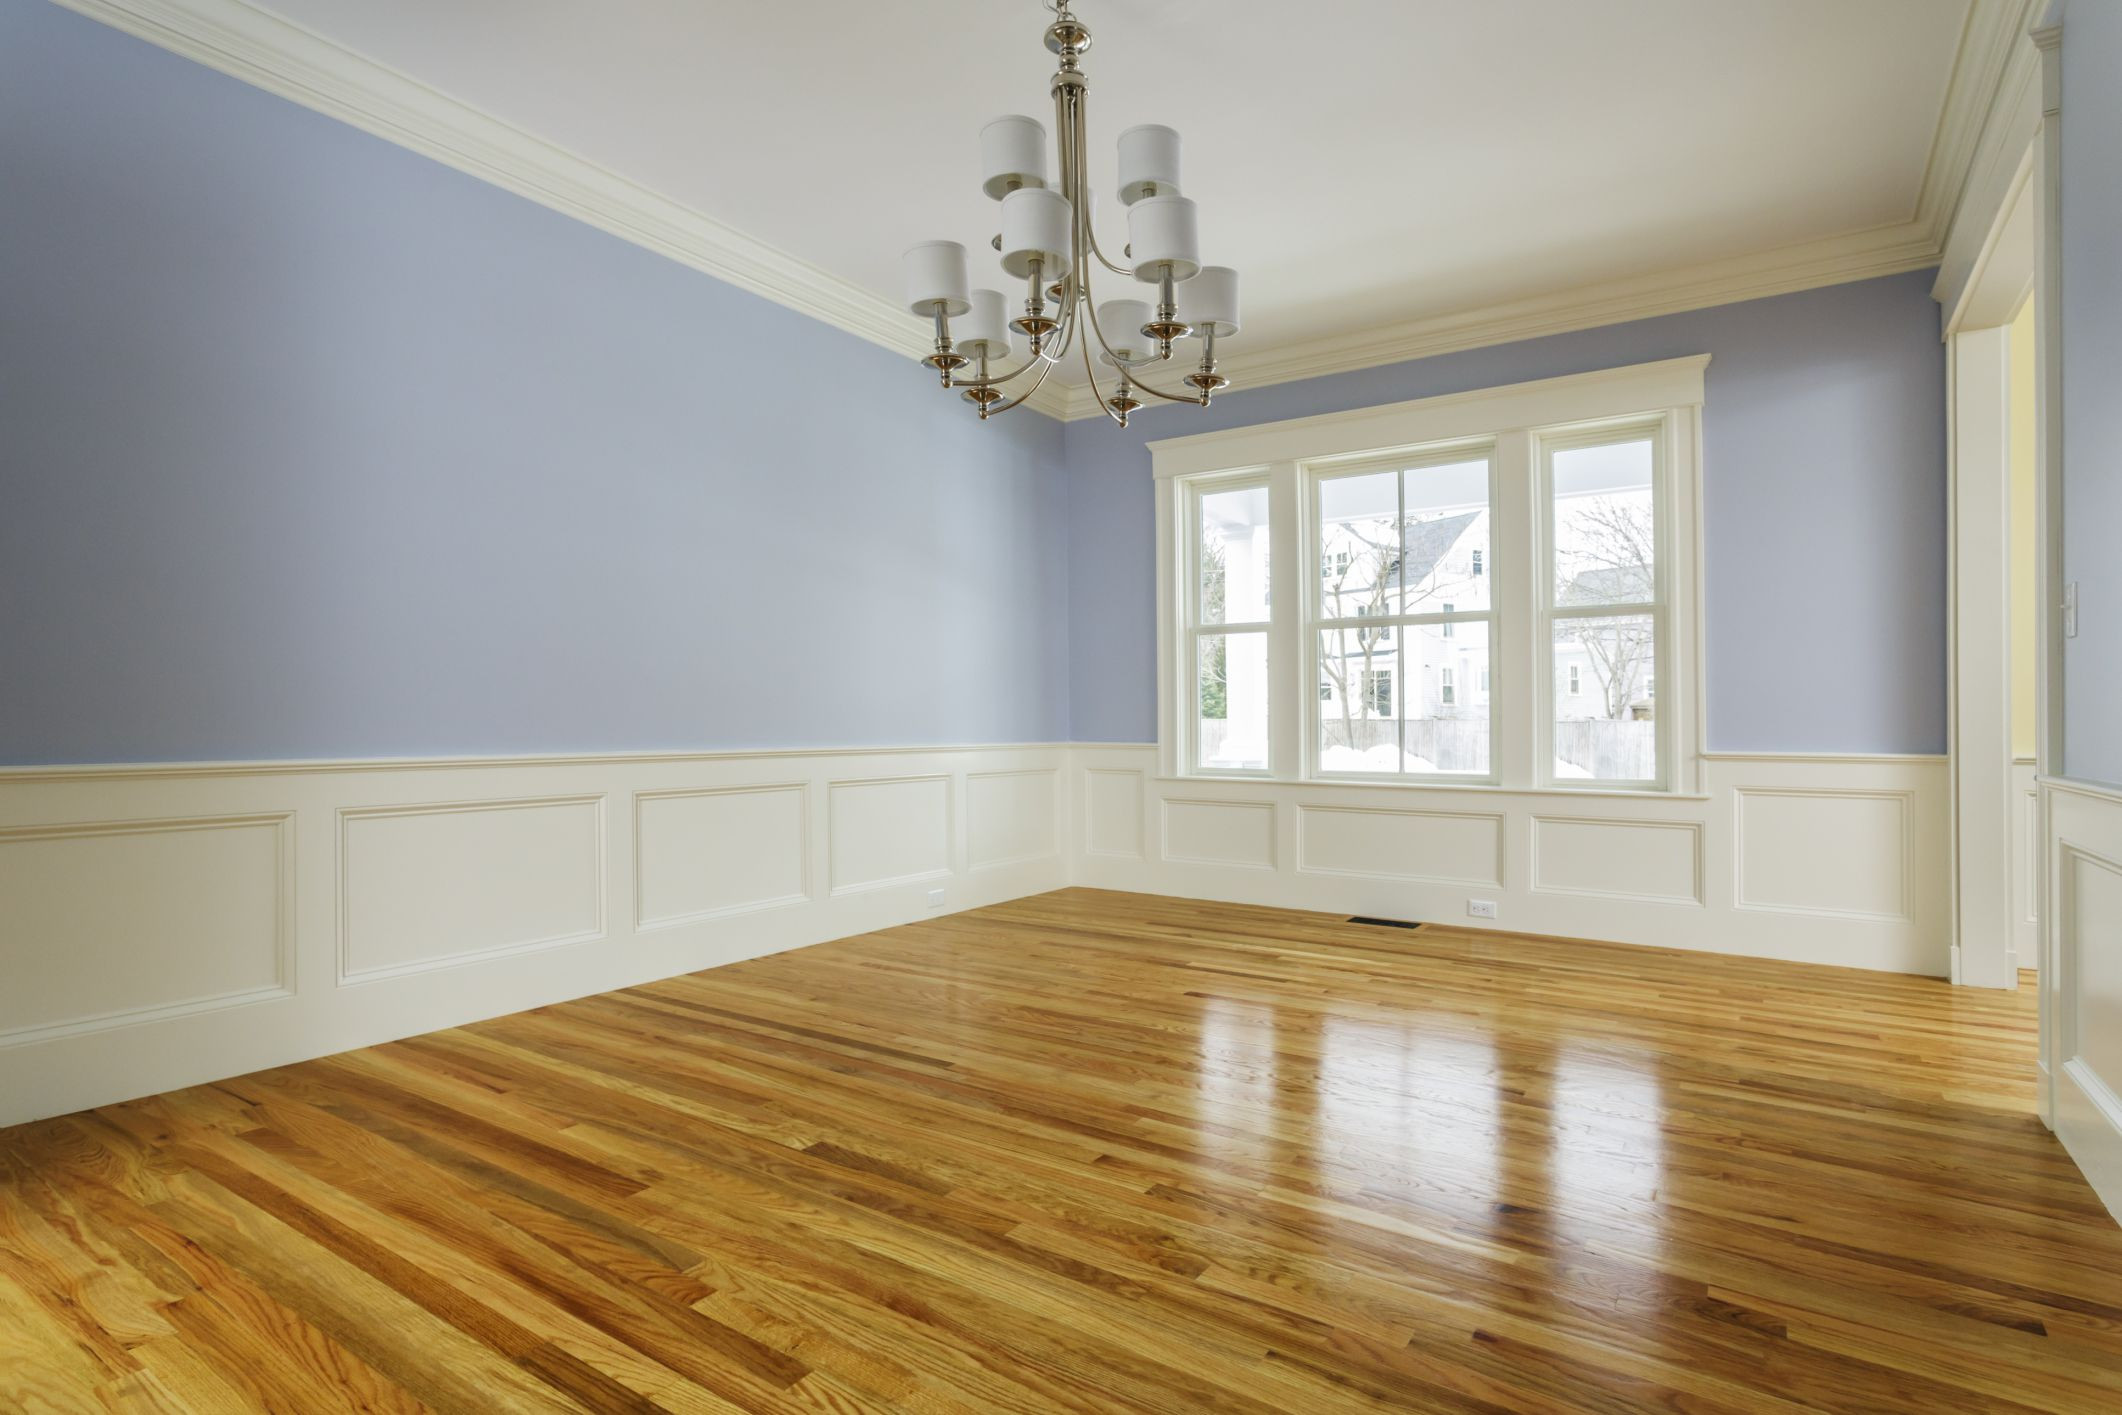 canadian red oak hardwood flooring of the cost to refinish hardwood floors intended for 168686572 highres 56a2fd773df78cf7727b6cb3